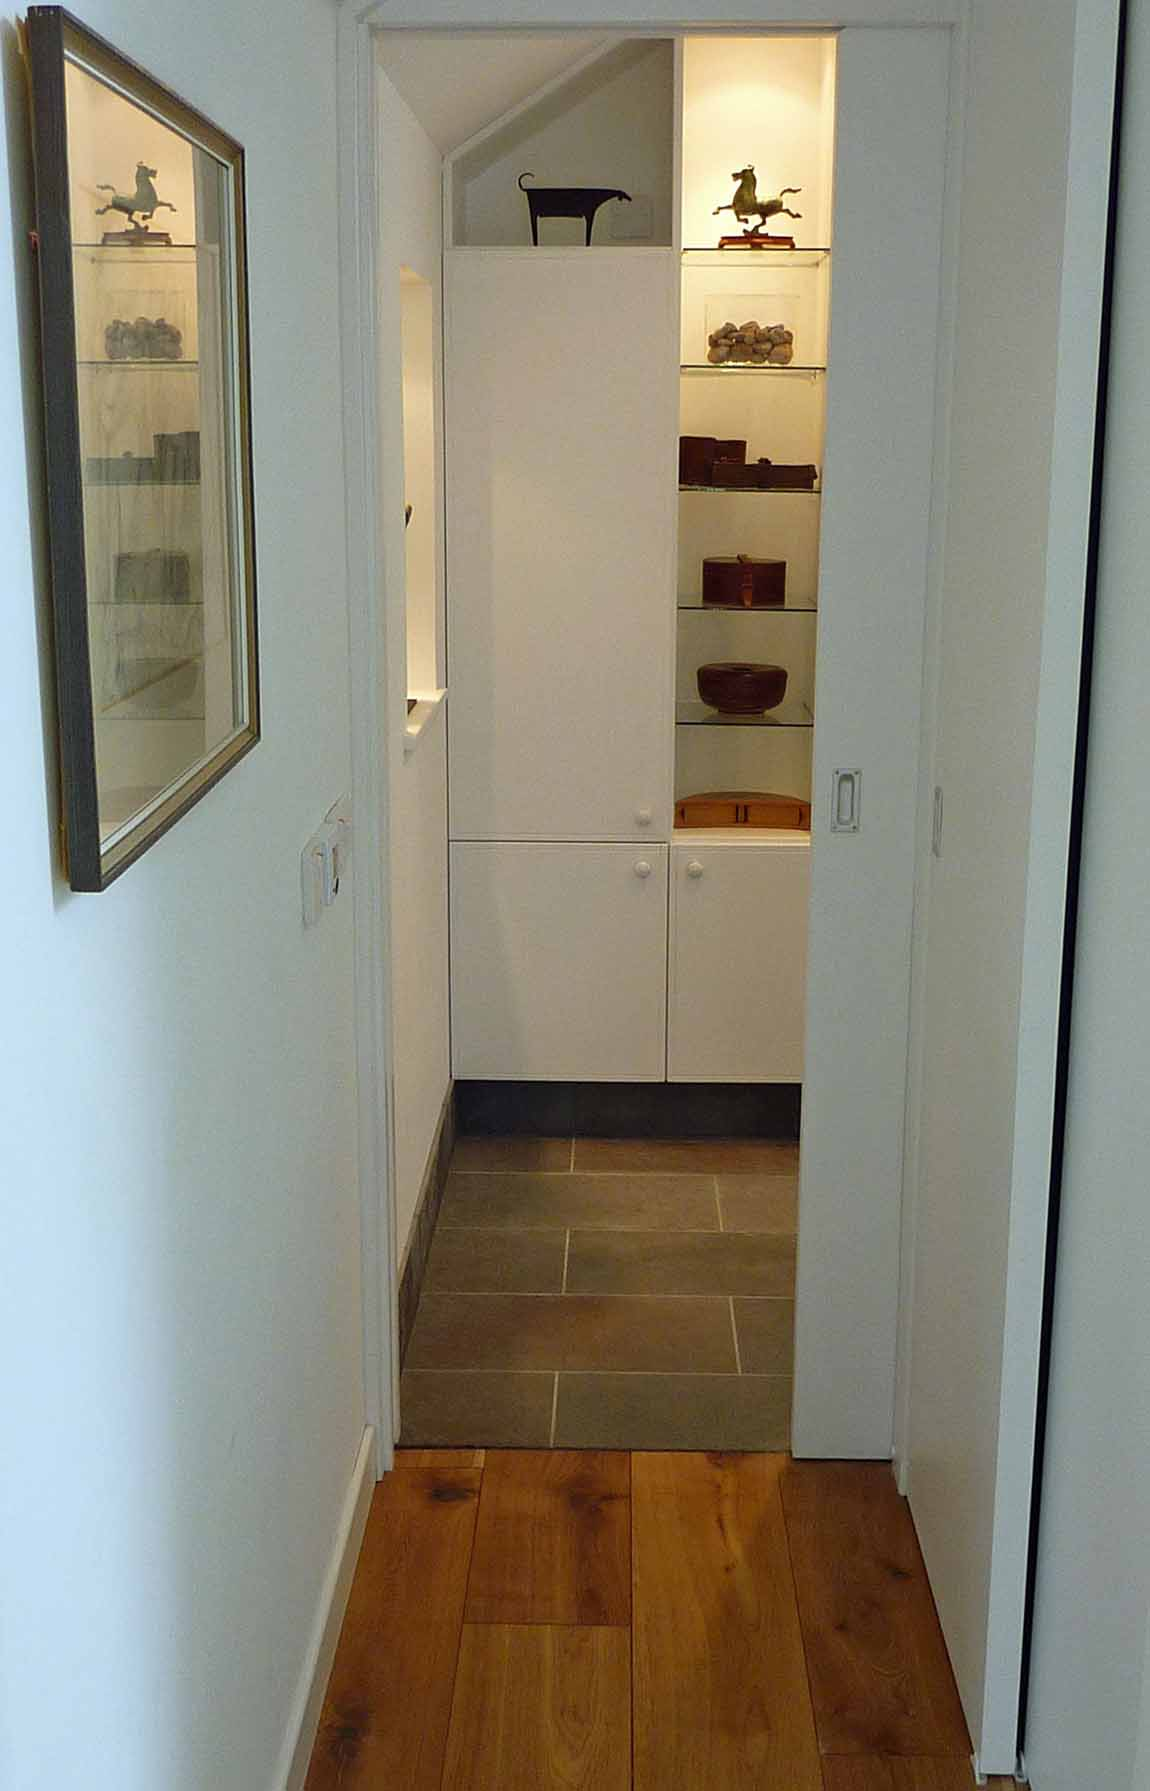 New Life for Old Buildings, Redman + Sutherland Architects New House, Cullivoe, Yell, Shetland bathroom entrance